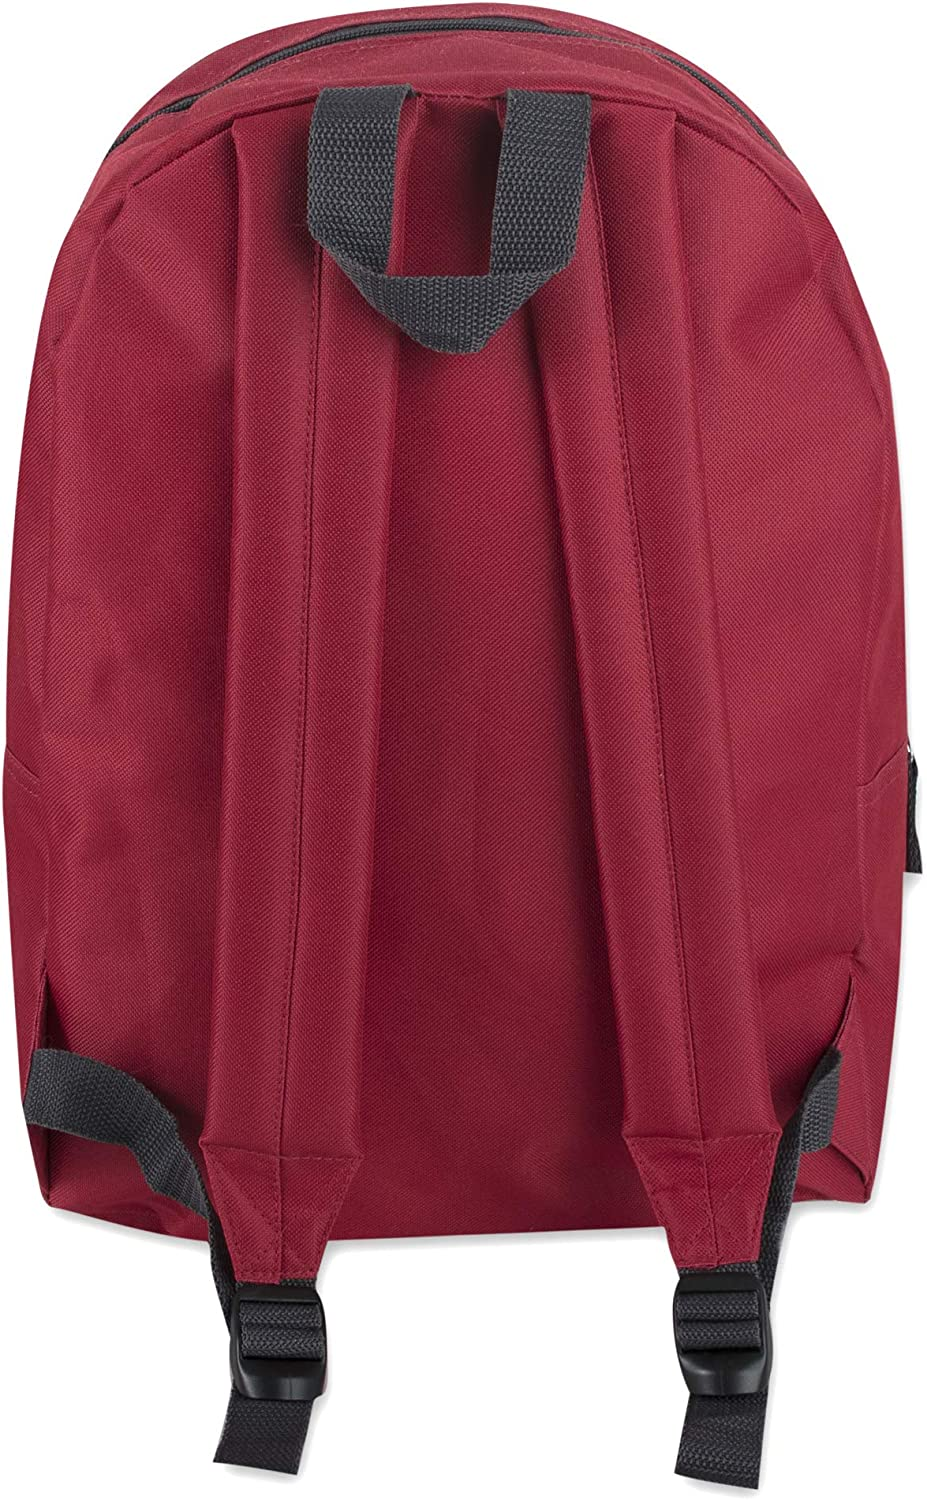 Trailmaker Classic 17 Inch Backpack with Adjustable Padded Shoulder Straps (Red): Clothing